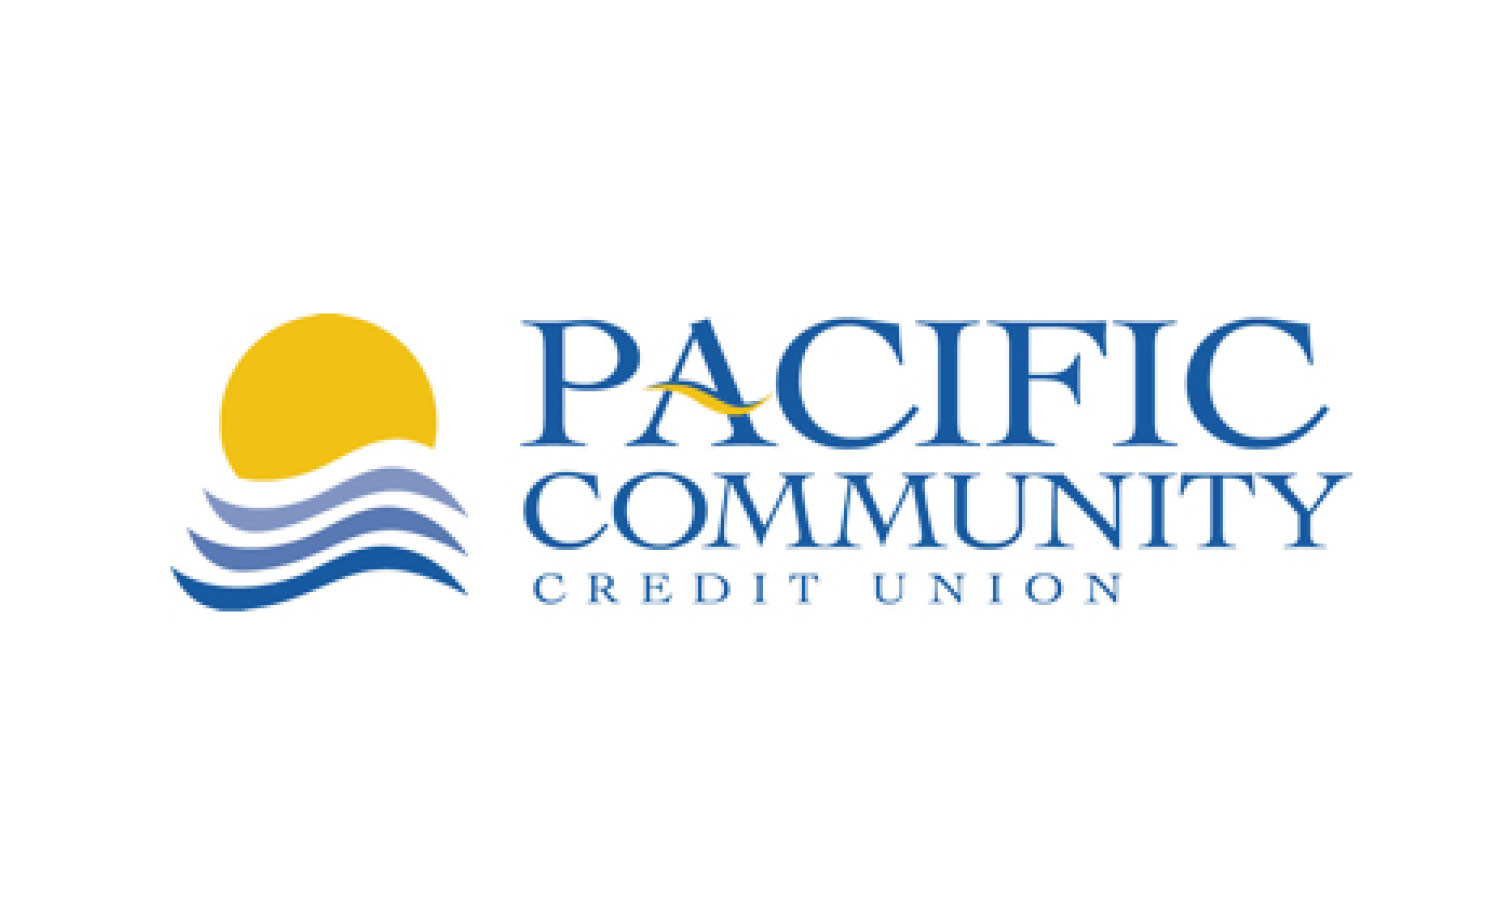 Pacific Community Credit Union